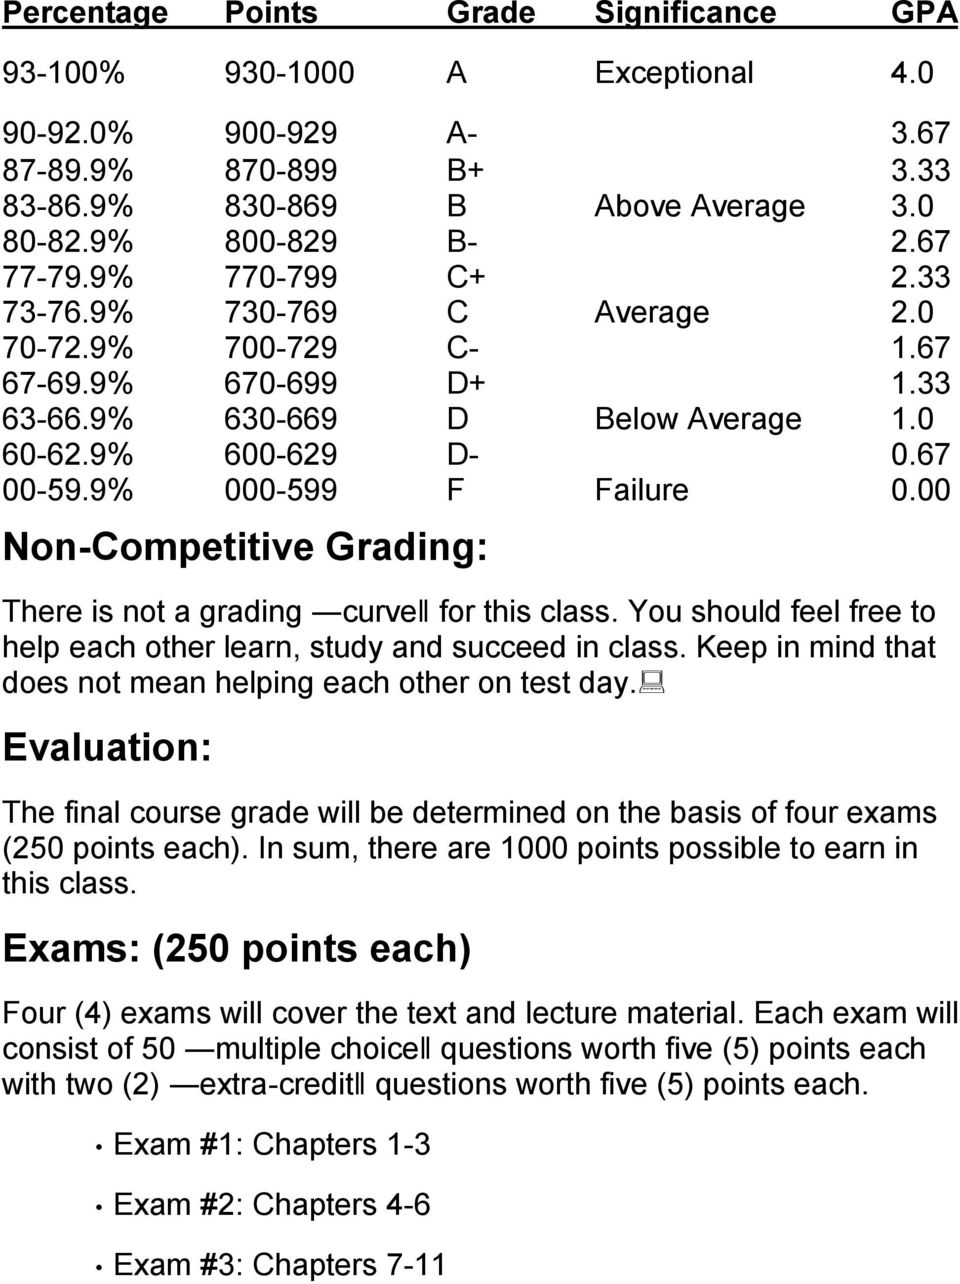 00 Non-Competitive Grading: There is not a grading curve for this class. You should feel free to help each other learn, study and succeed in class.